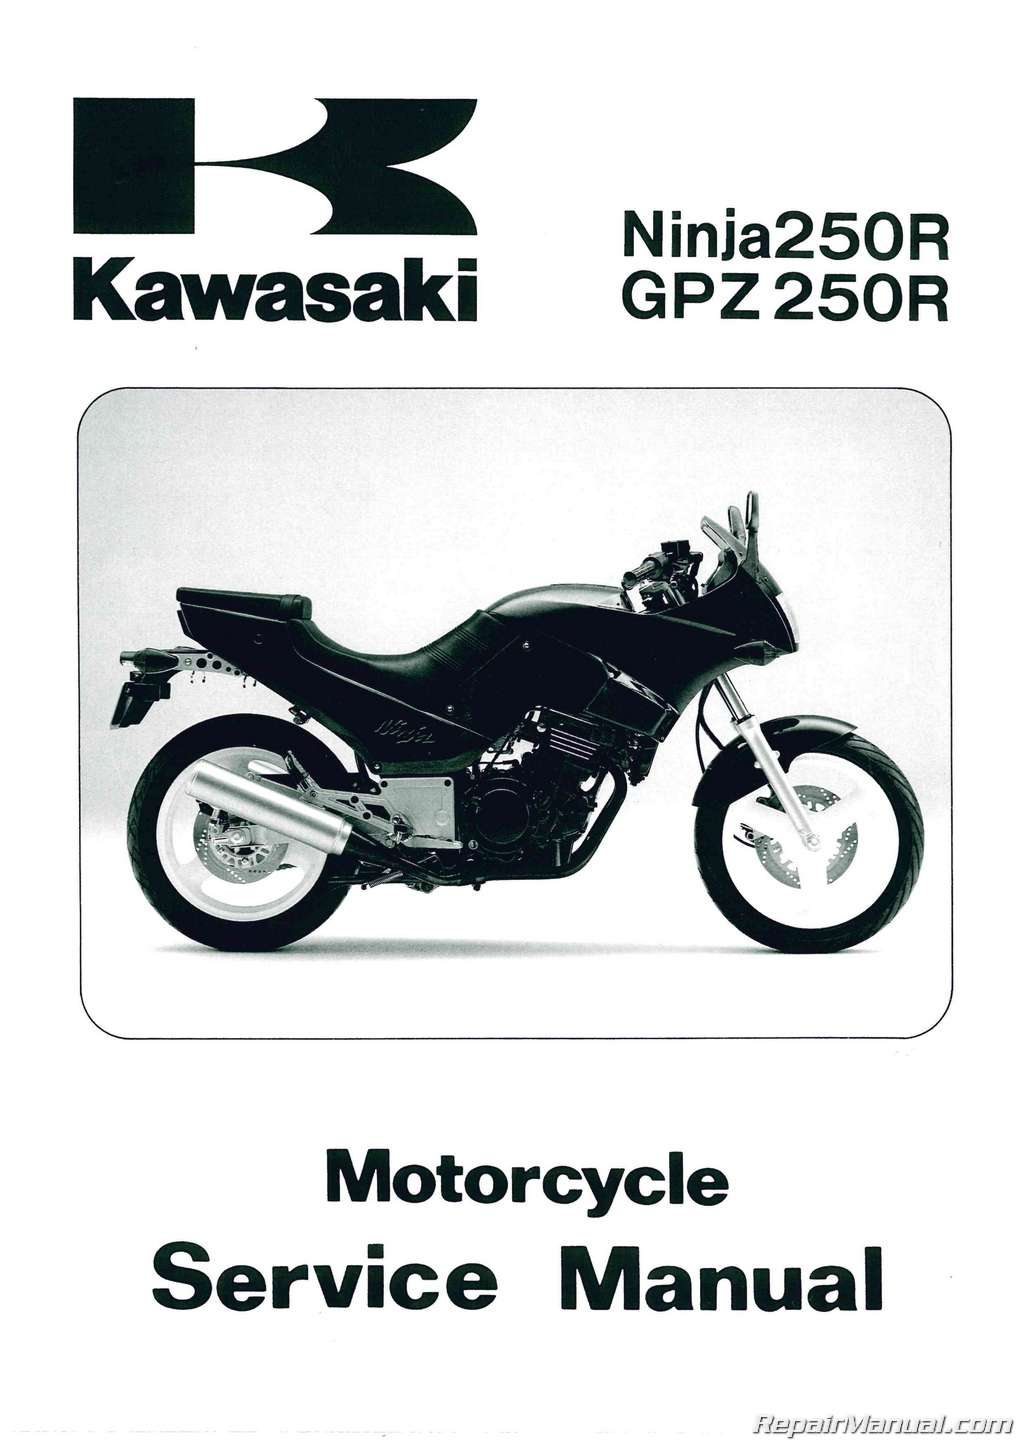 kawasaki ninja 250 manual best setting instruction guide u2022 rh merchanthelps us Kawasaki Ninja 1000 Kawasaki Ninja 250